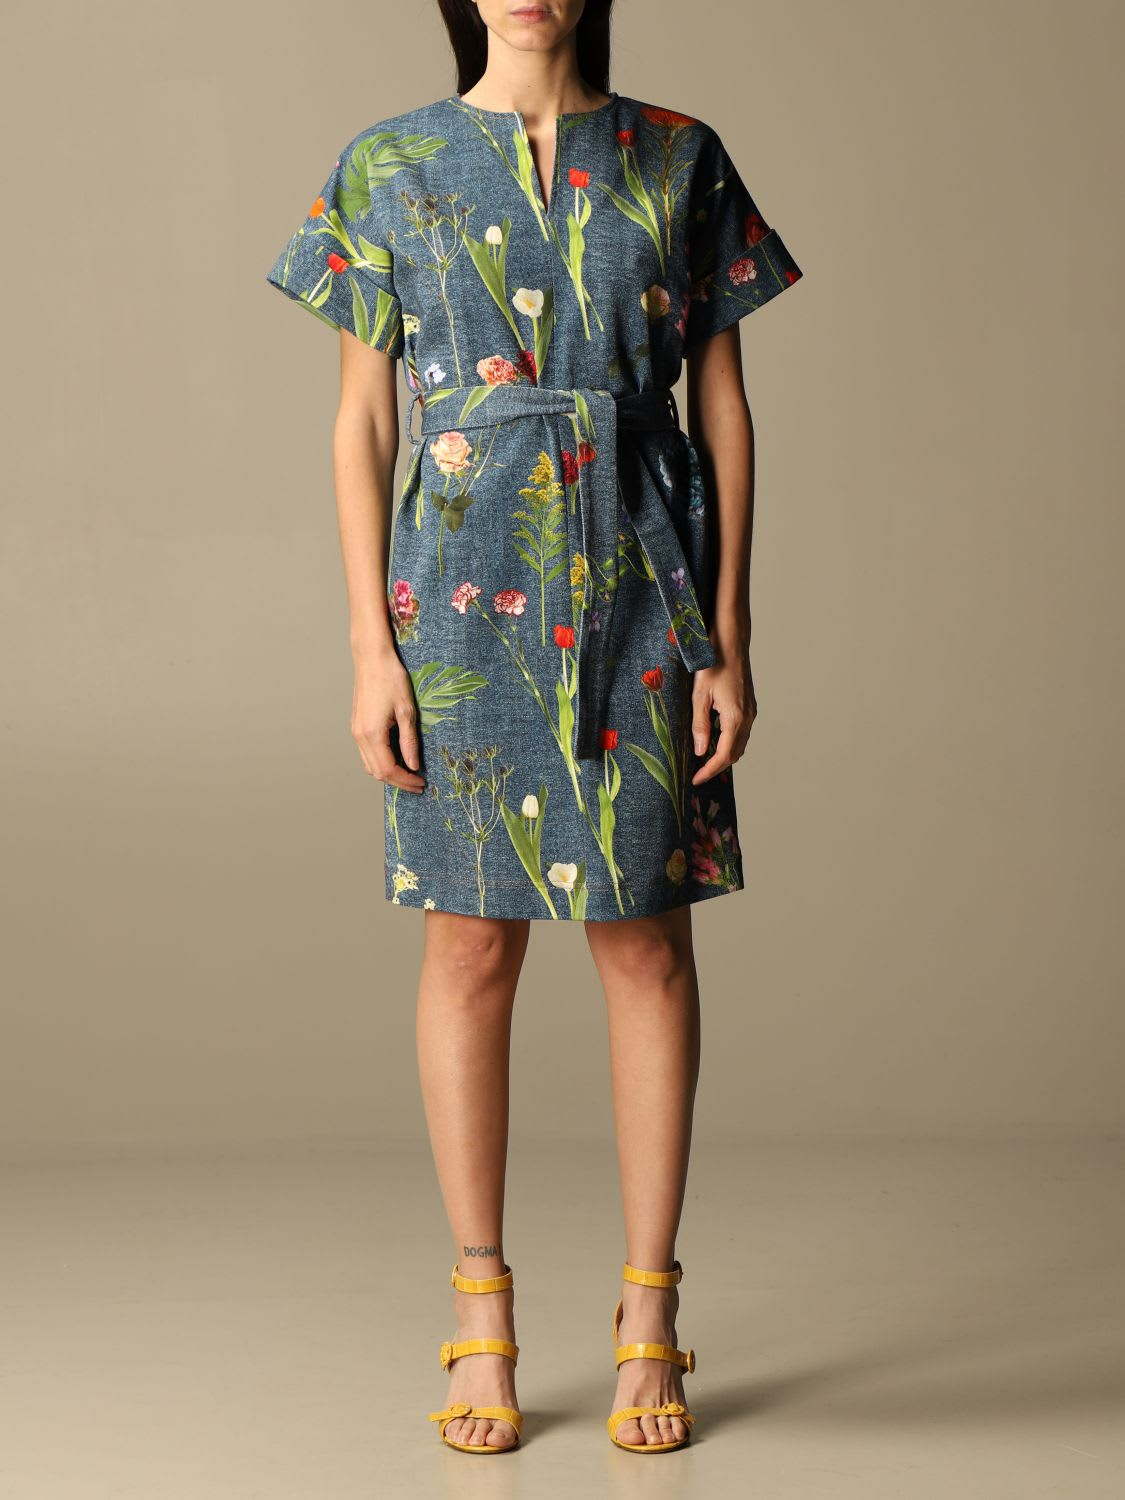 Boutique Moschino Dress Drill Boutique Moschino Short Dress With Botanical Pattern